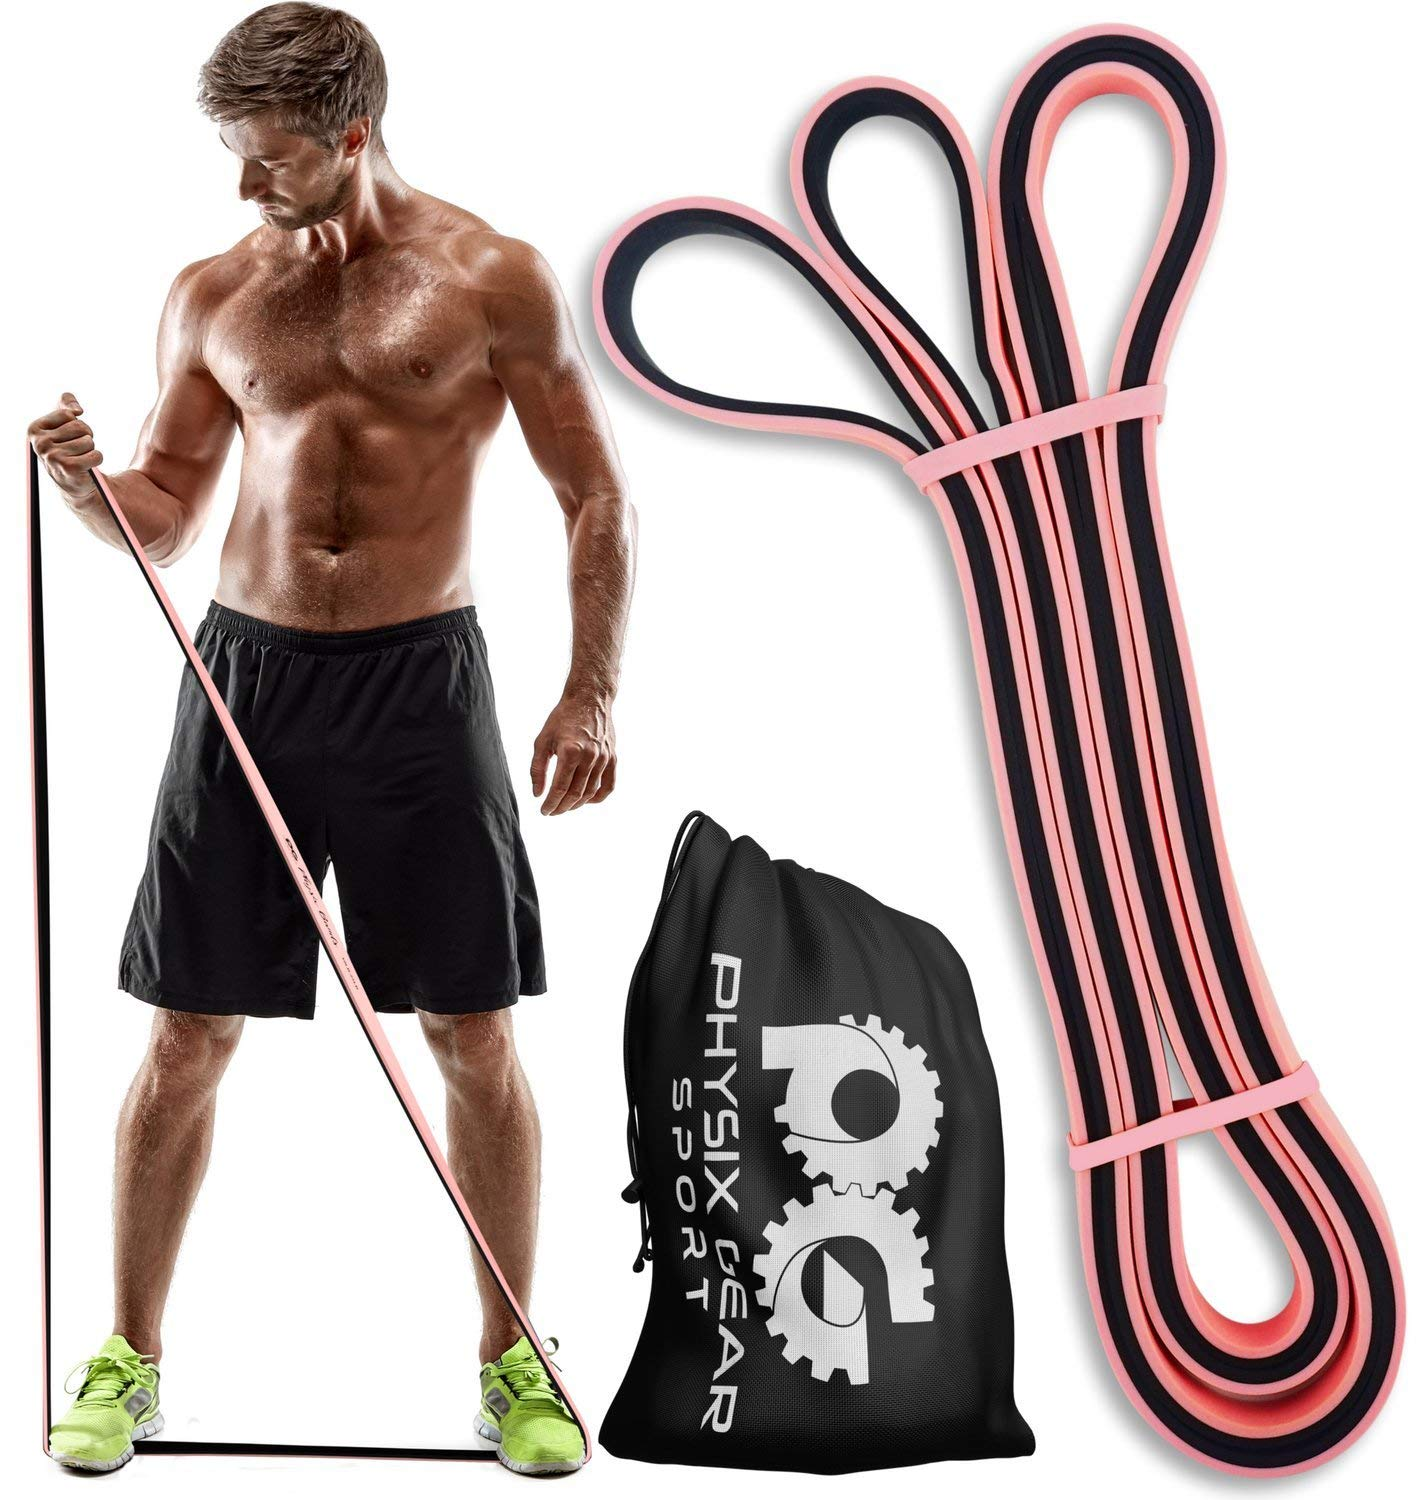 Physix Gear Pull-Up Assist Heavy-Duty Resistance Bands